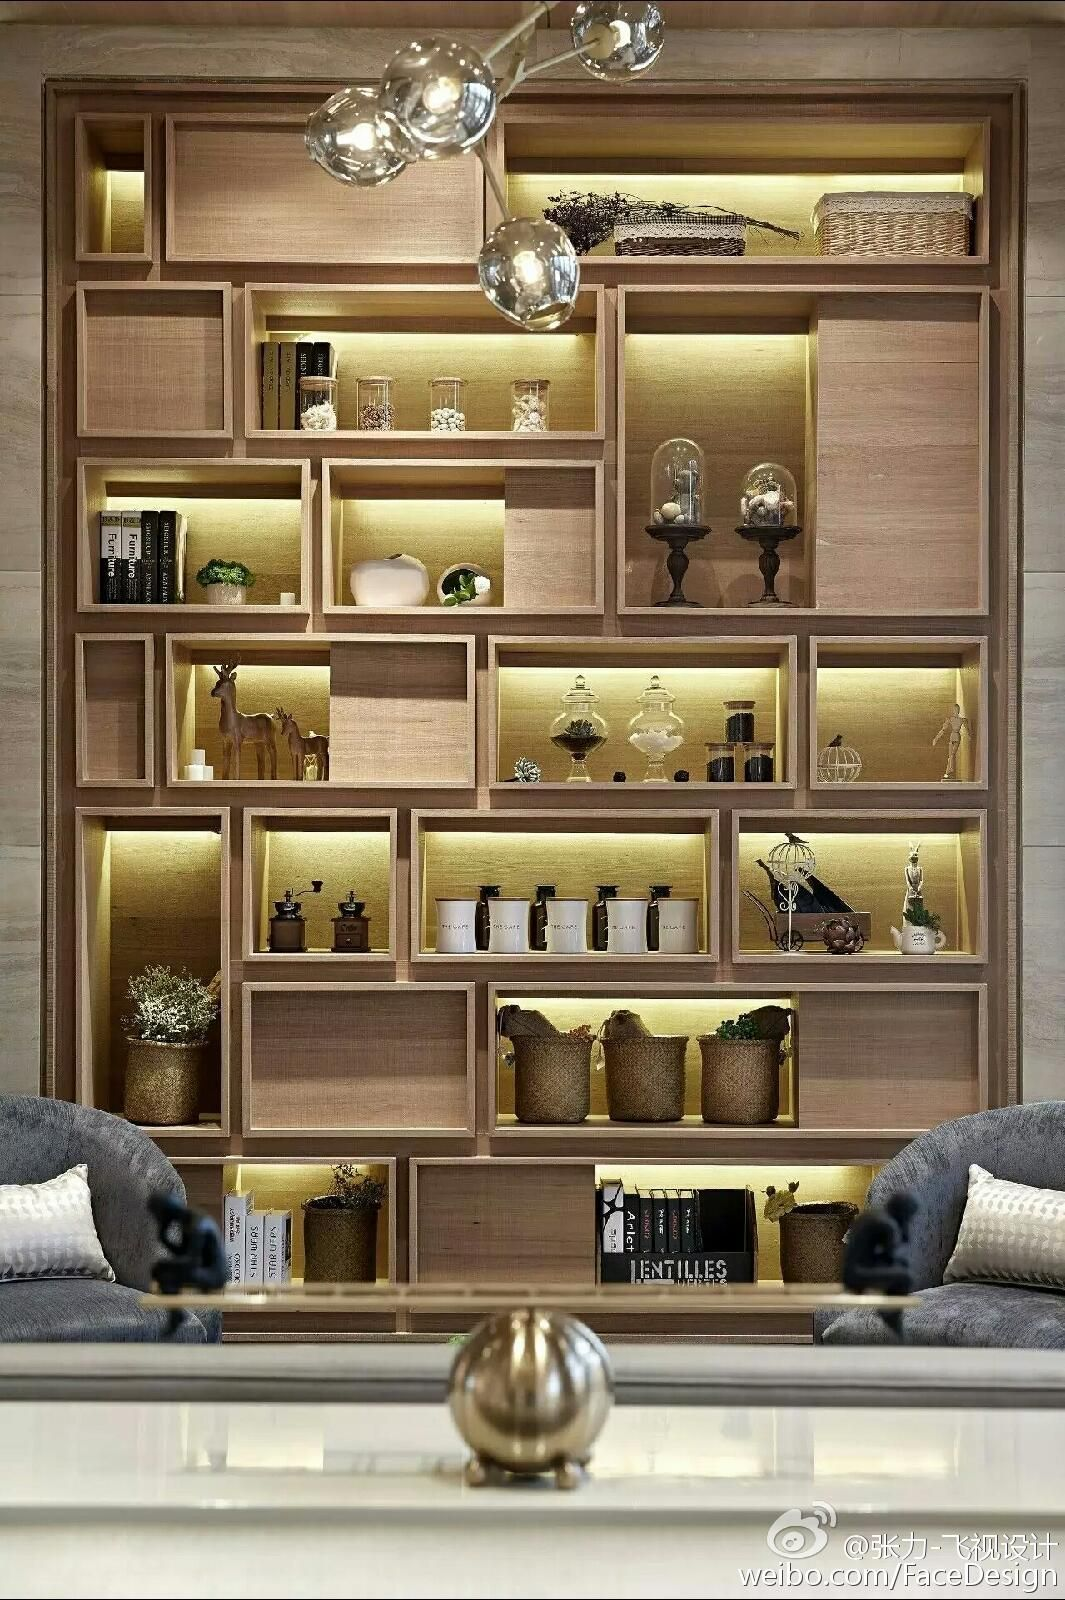 Pin by g ft on kj study room design furniture - Display living room decorating ideas ...